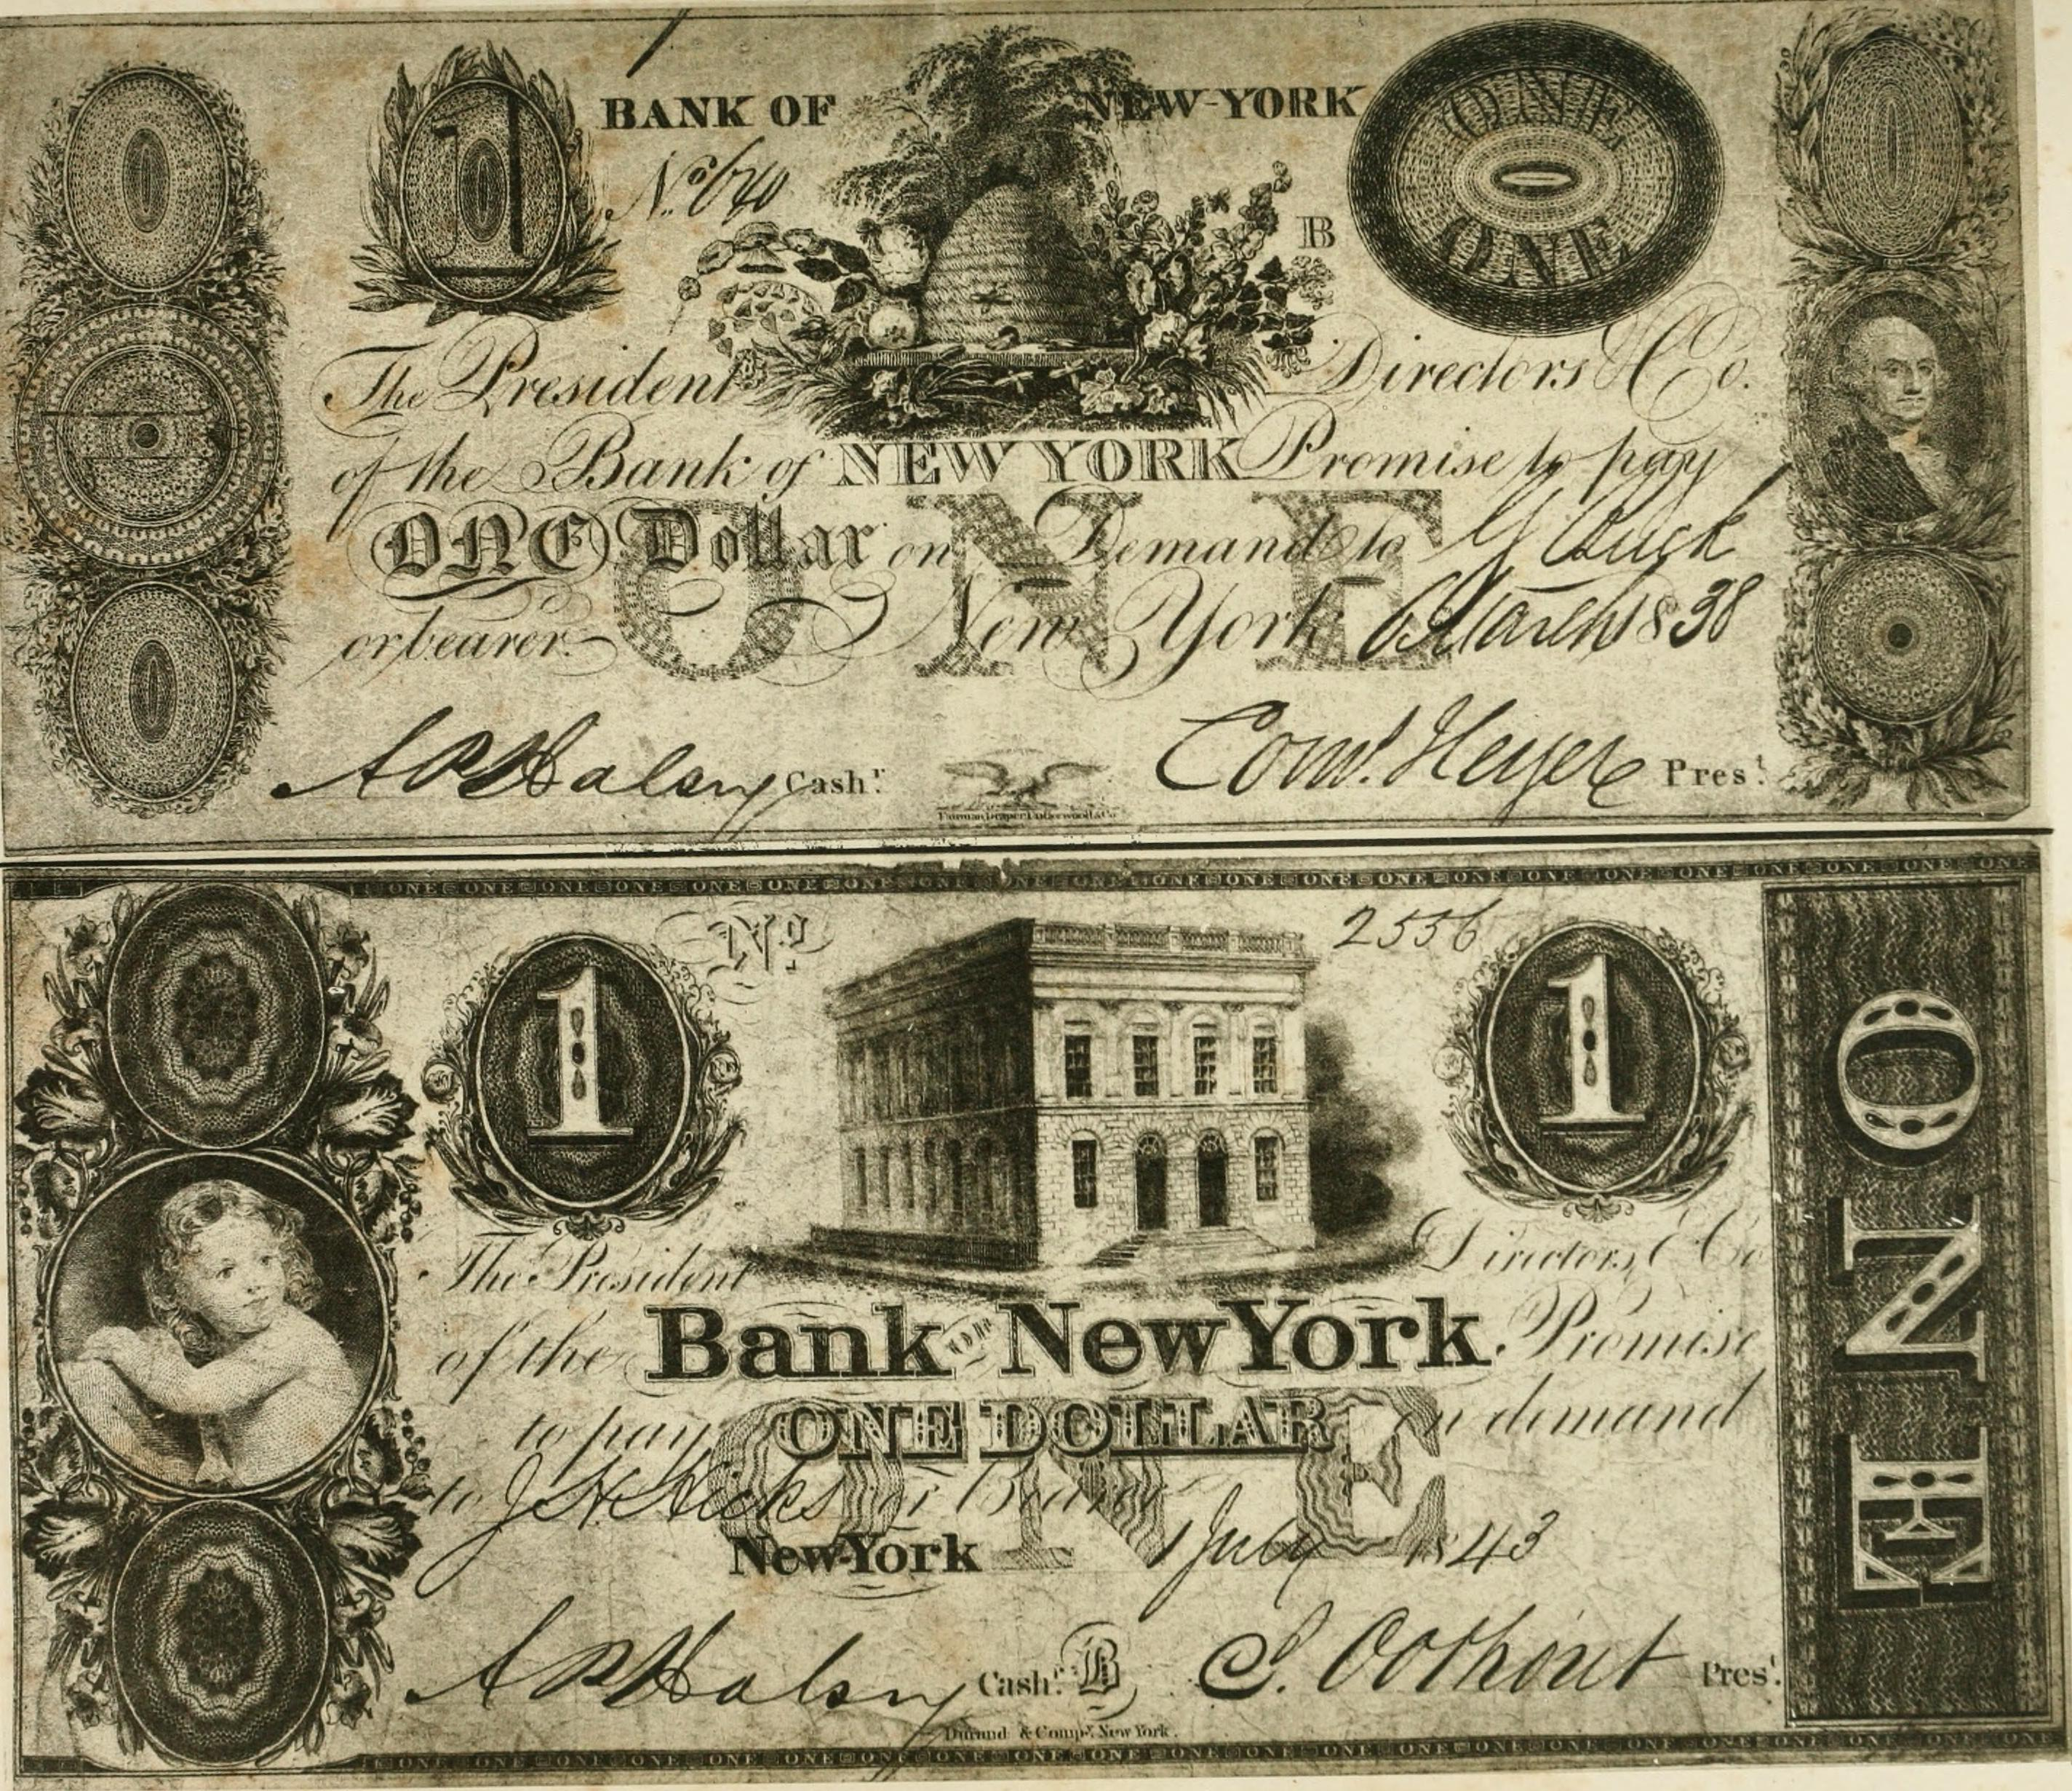 File:A history of the Bank of New York, 1784-1884 (1884